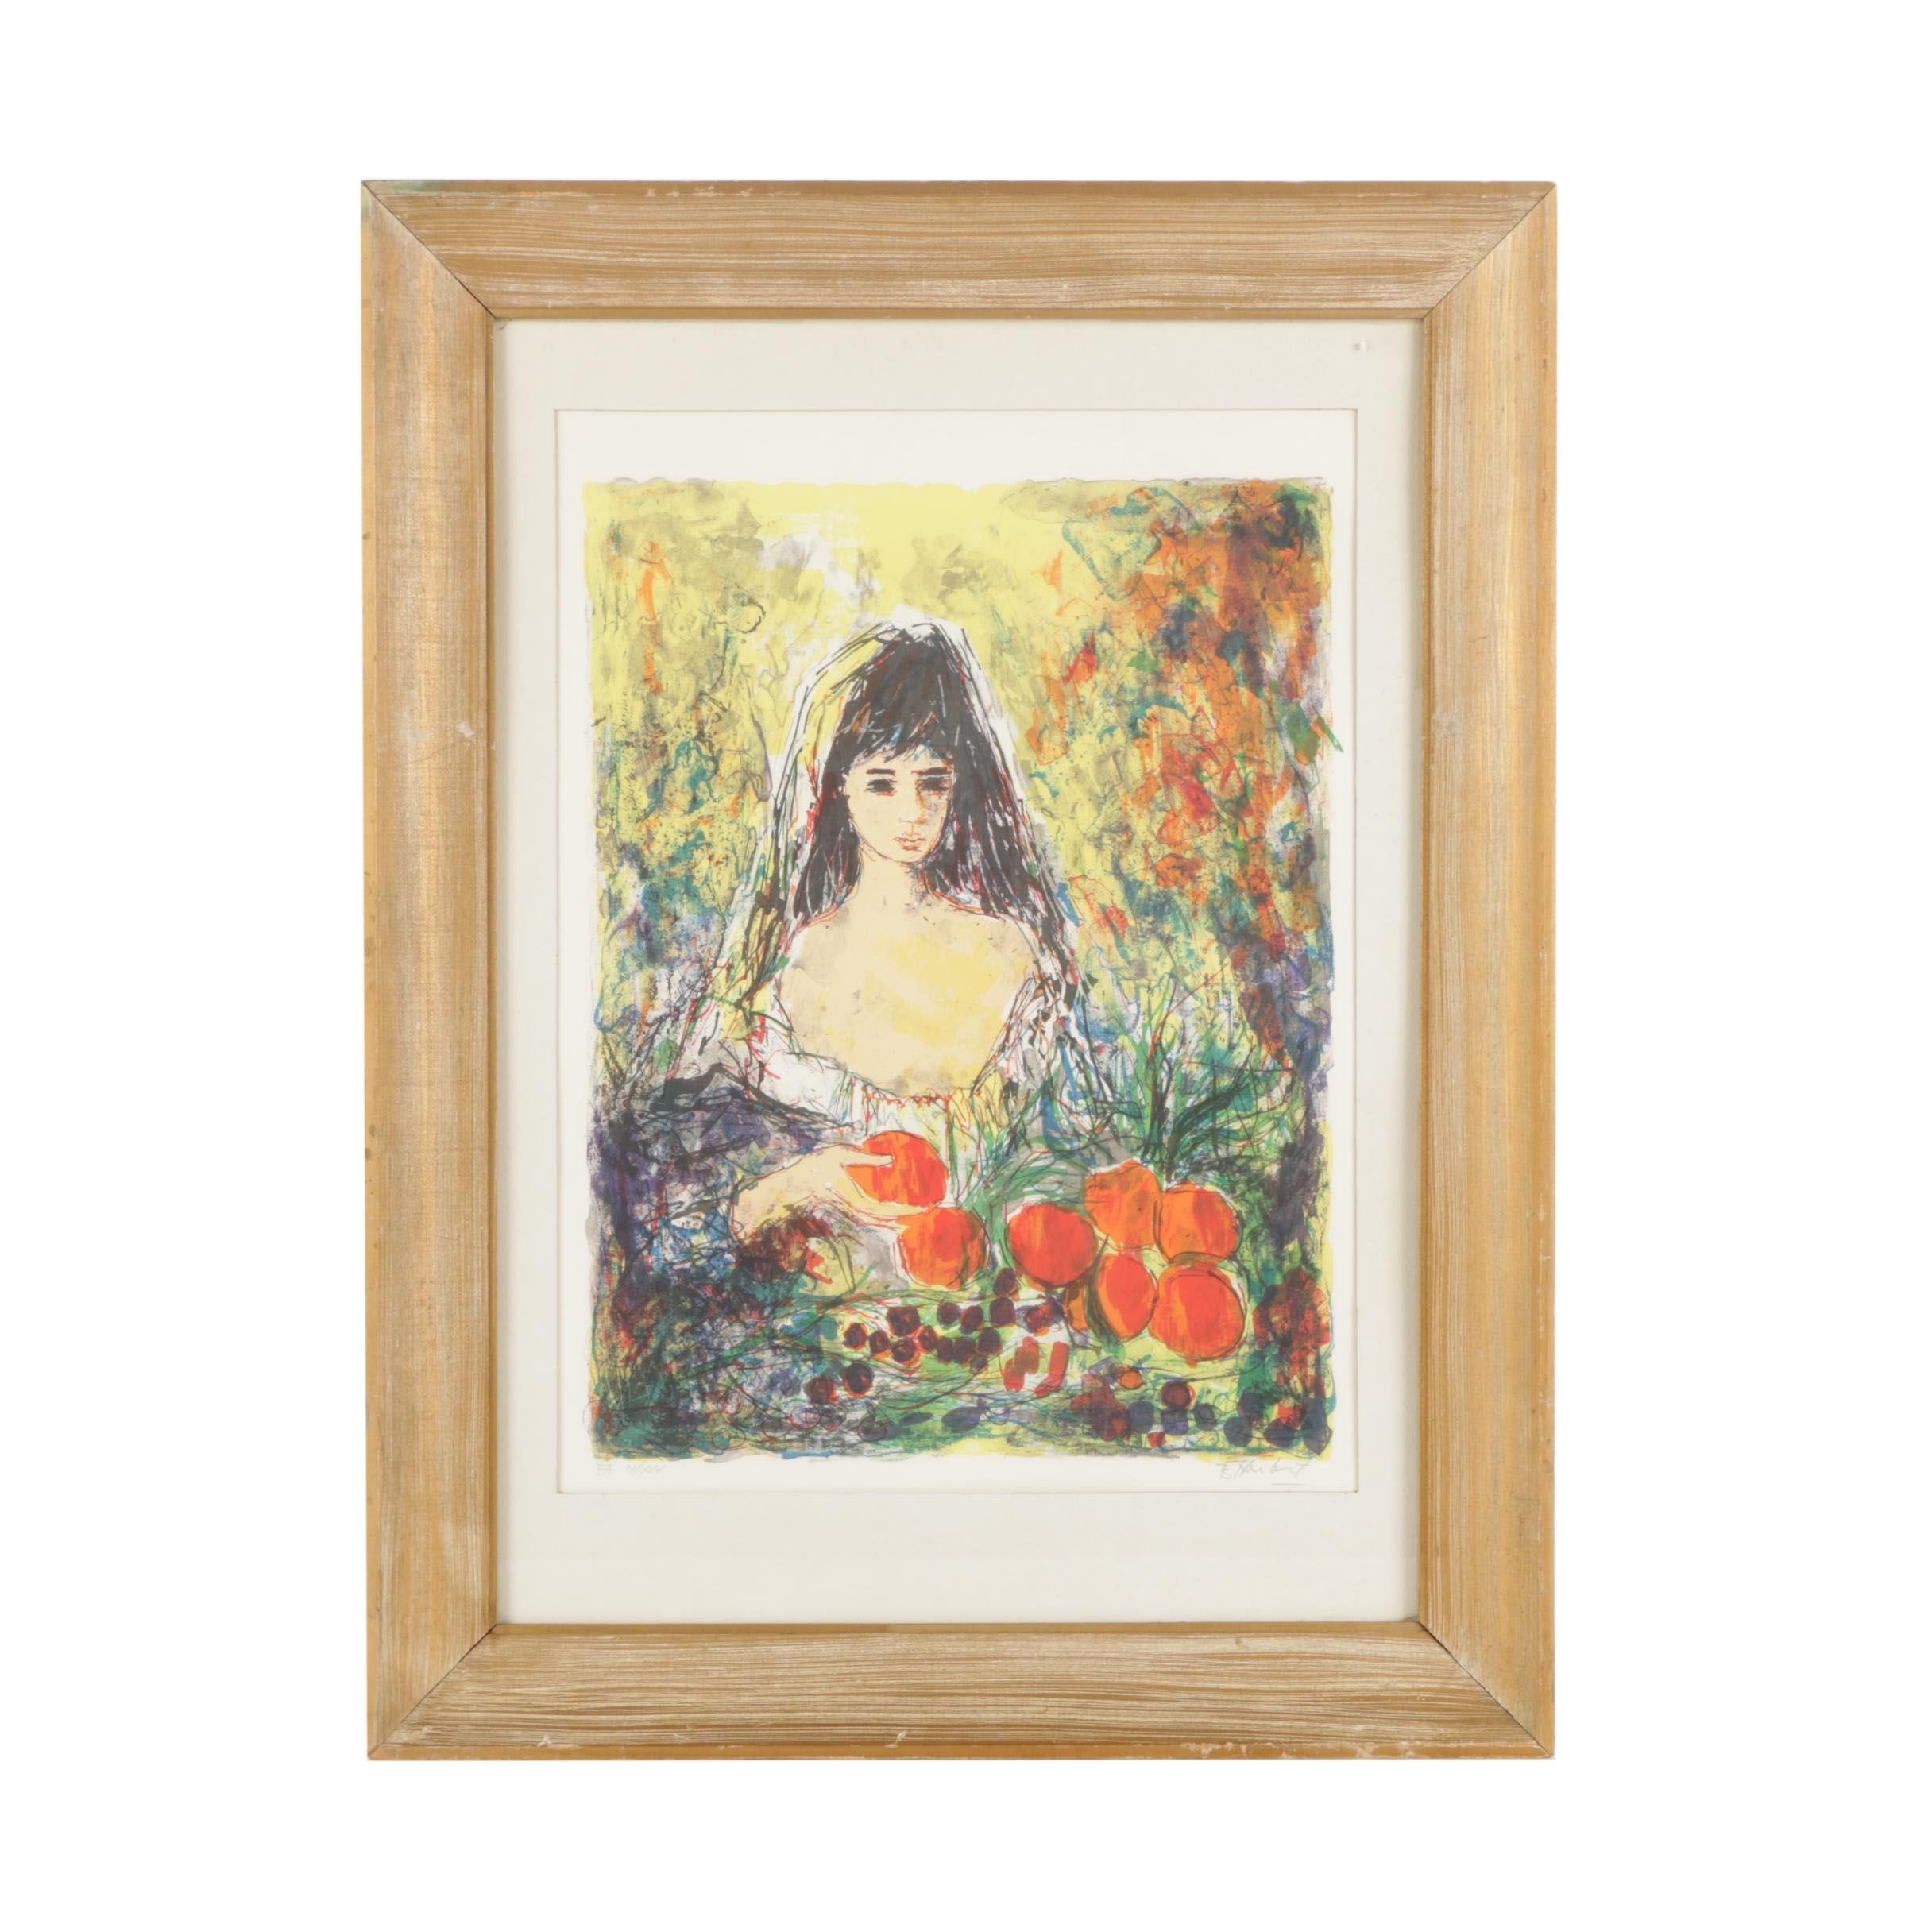 Signed Limited Edition Color Lithograph of Girl Holding Fruit